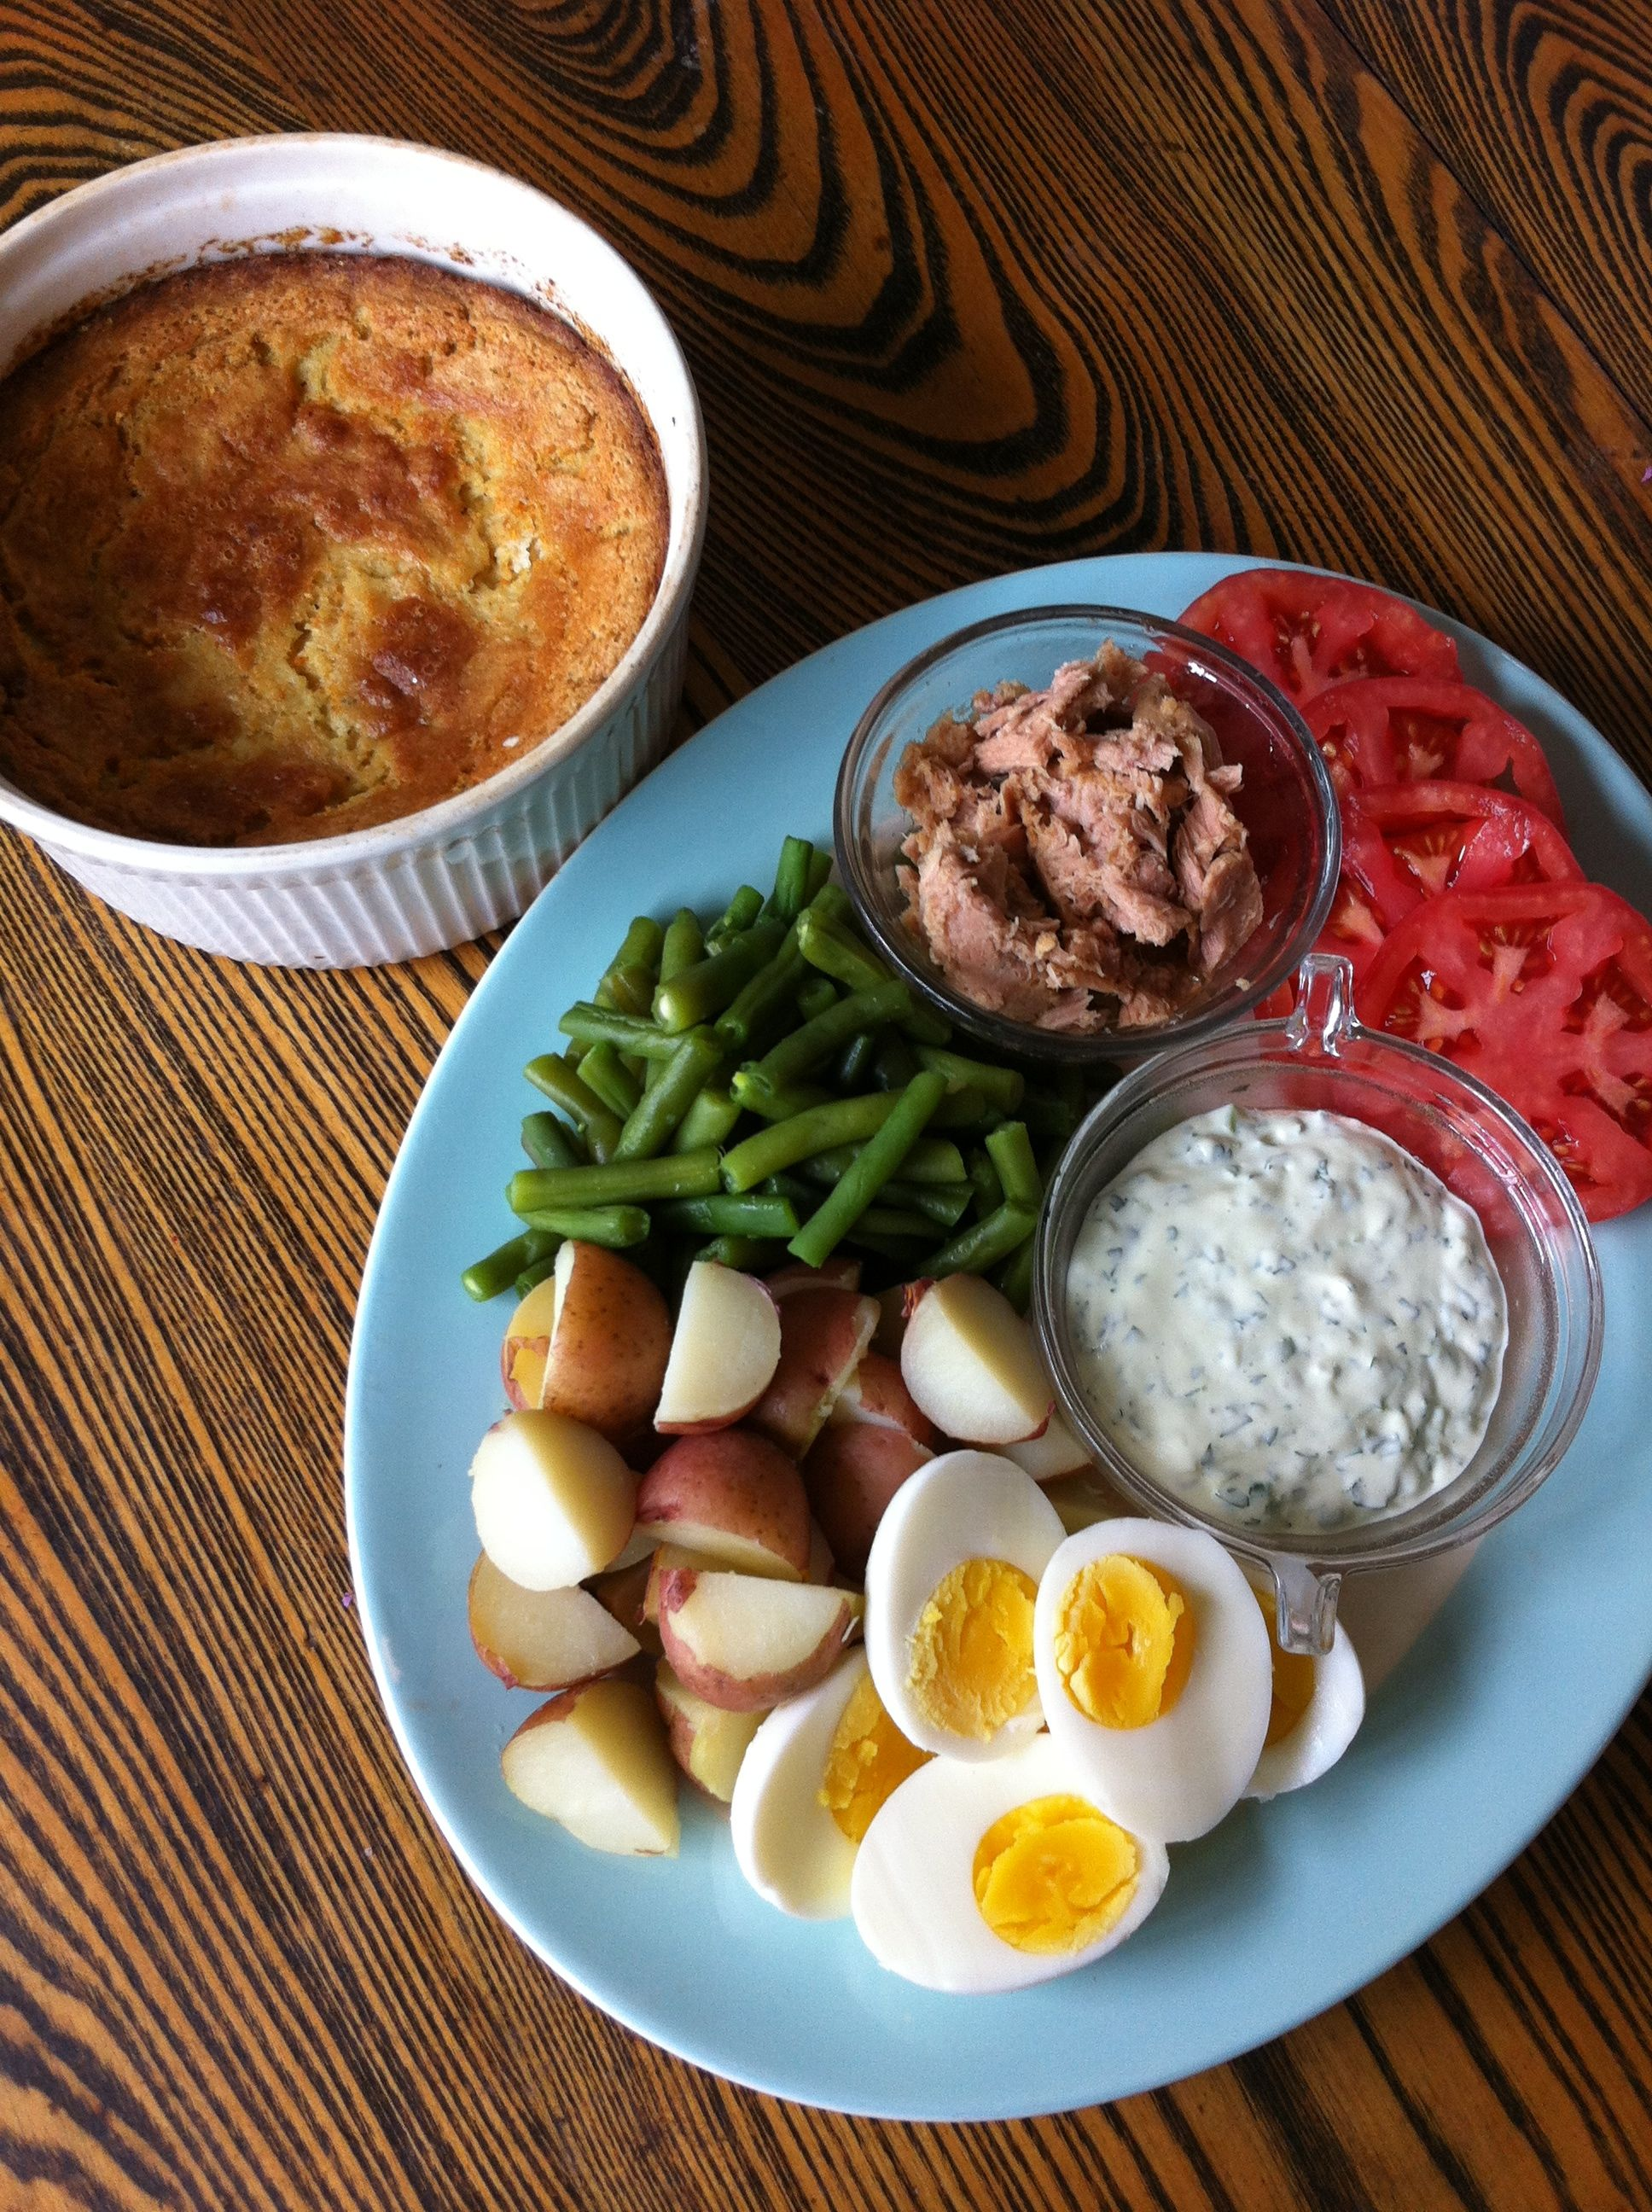 Big baby blue platter with simple Nicoise-style salad of potatoes, green berans, sliced tomatoes, hardboiled eggs, tuna, and herb mayonnaise, with a big beautiful casserole of spoonbread on the side